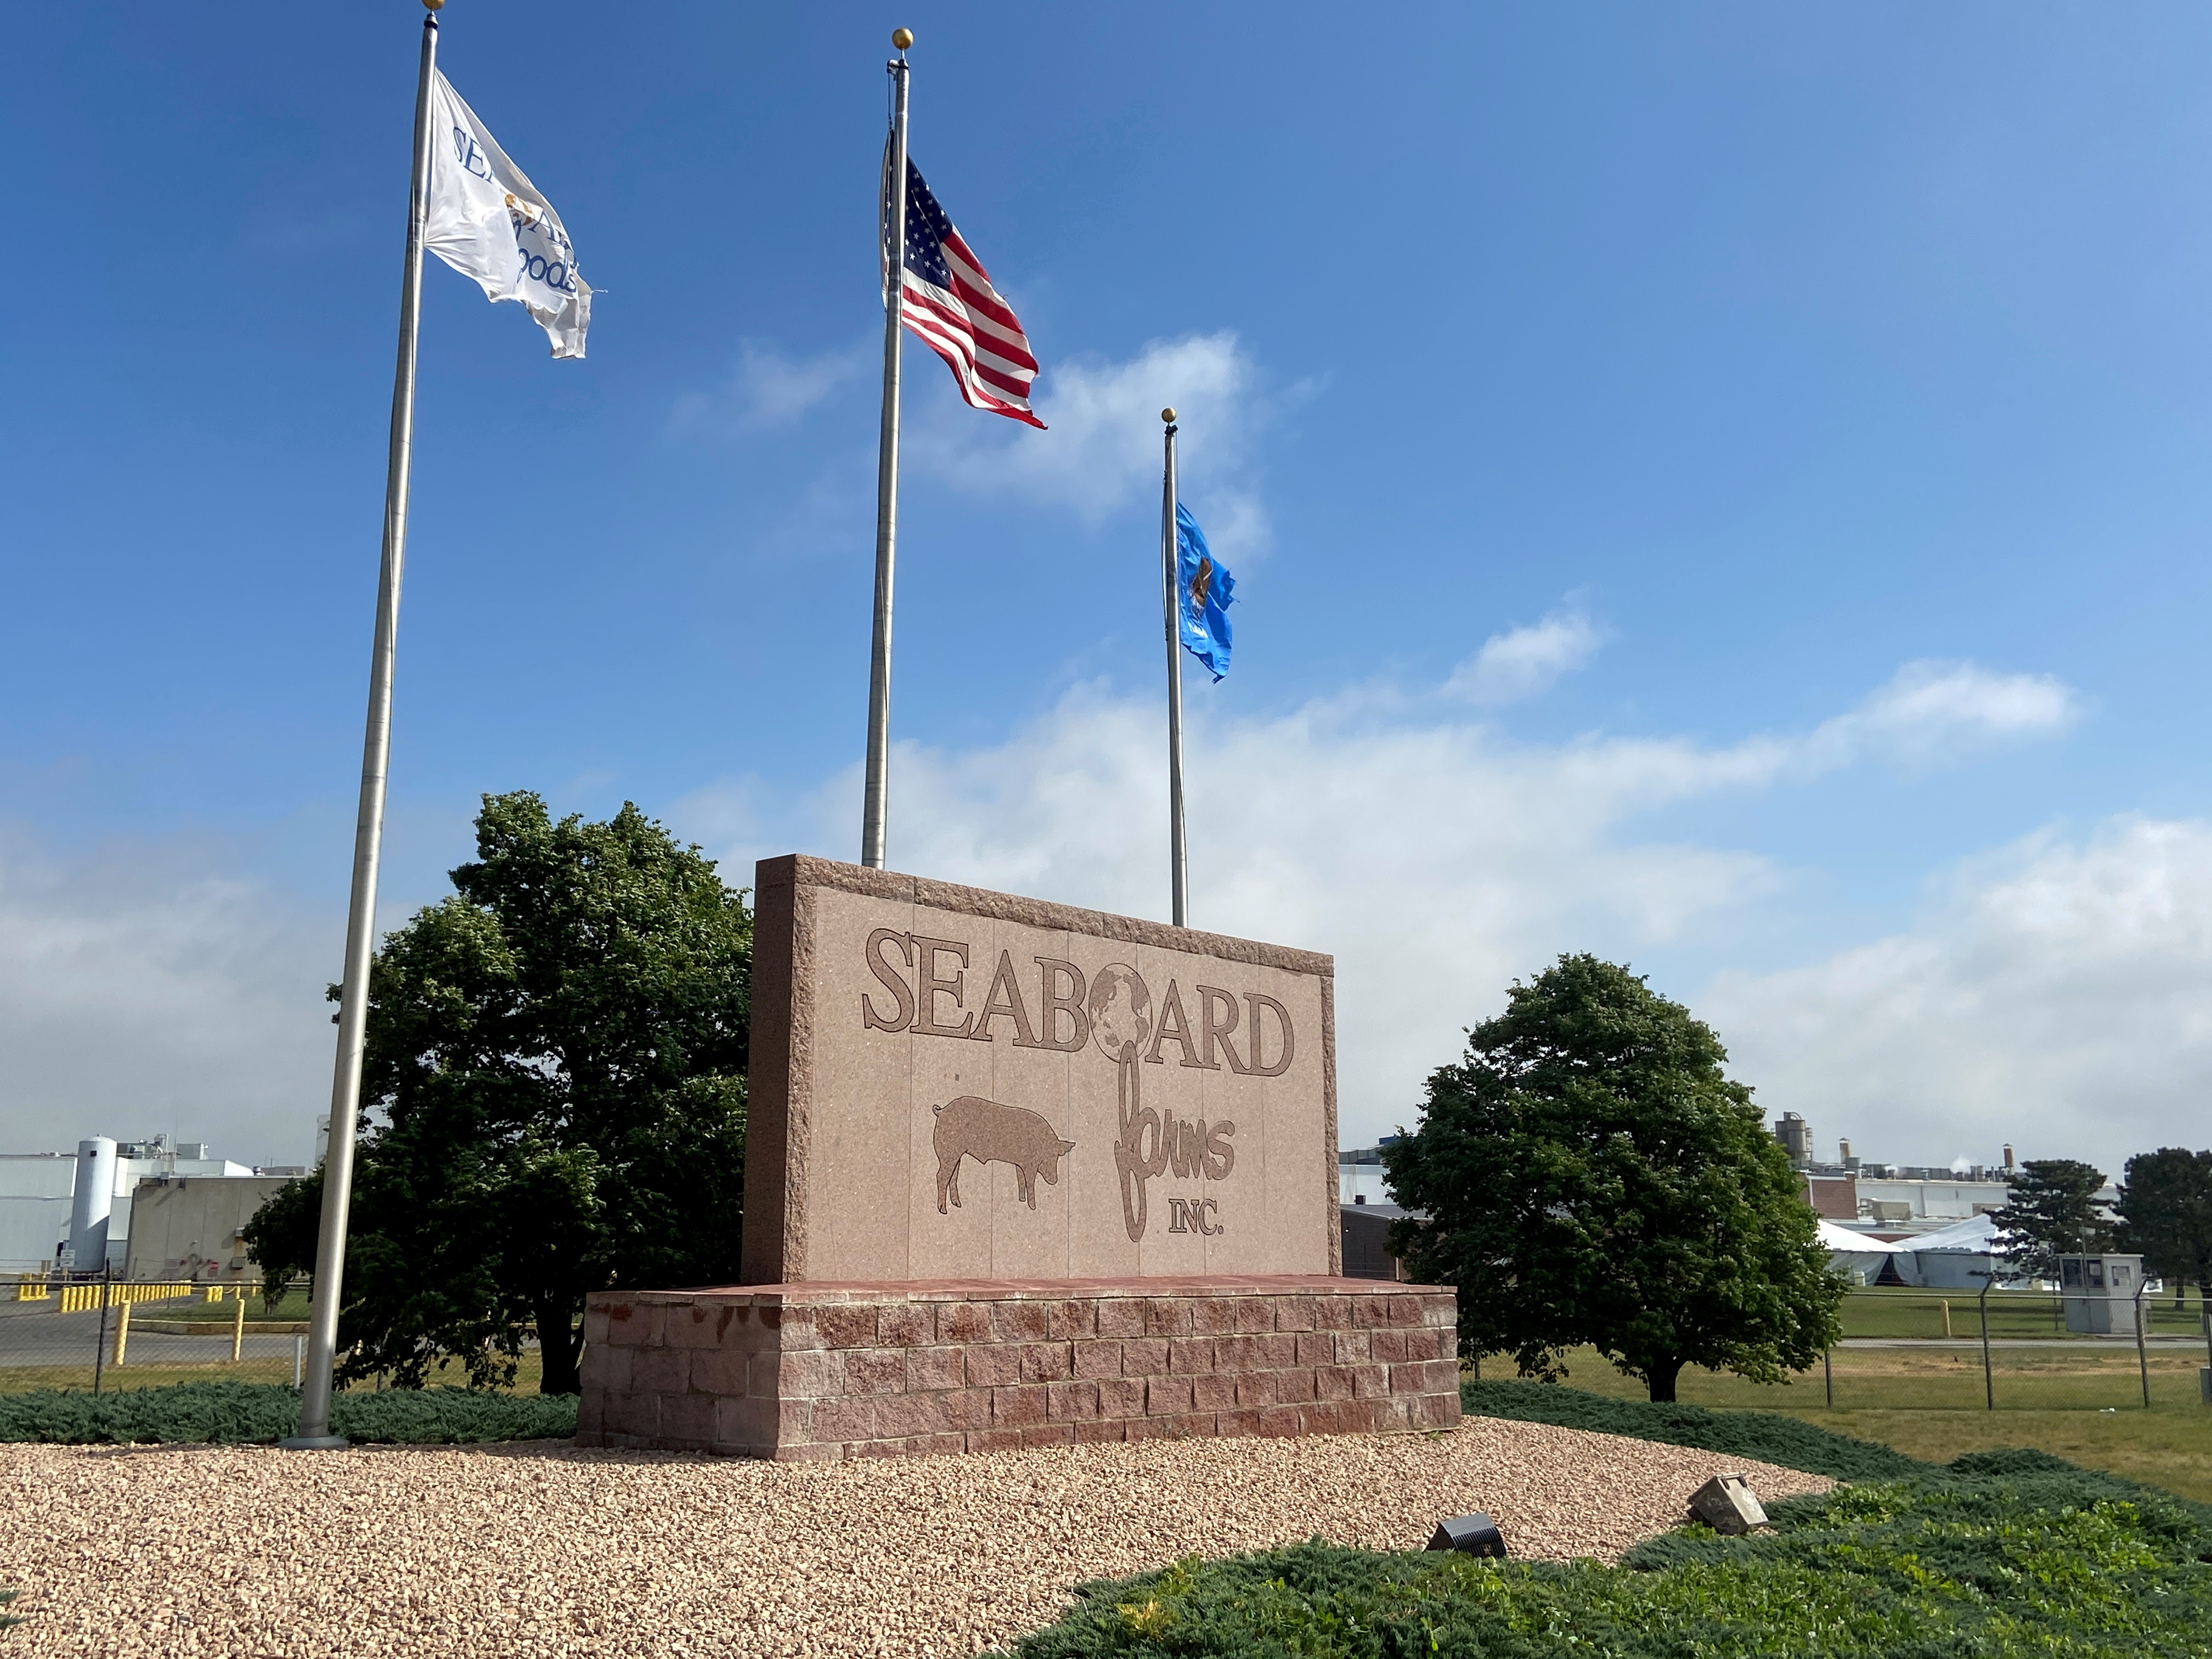 The logo of Seaboard Foods hog processing plant is seen in Guymon, Oklahoma, U.S., May 13, 2020. Picture taken May 13, 2020. REUTERS/Andrew Hay/File Photo